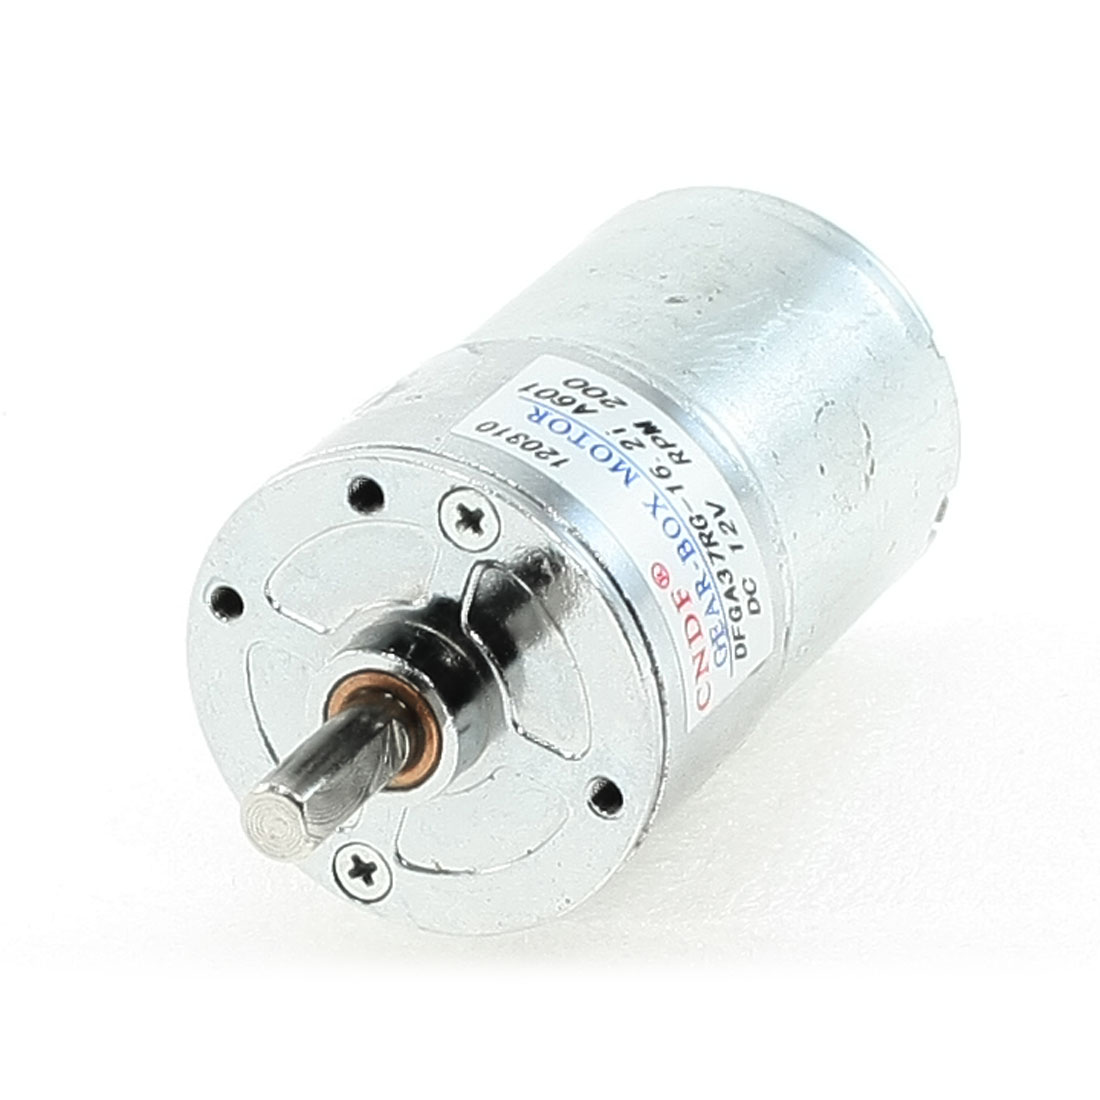 12VDC 200RPM Output Speed 37mm Body Diameter Geare Box Motor